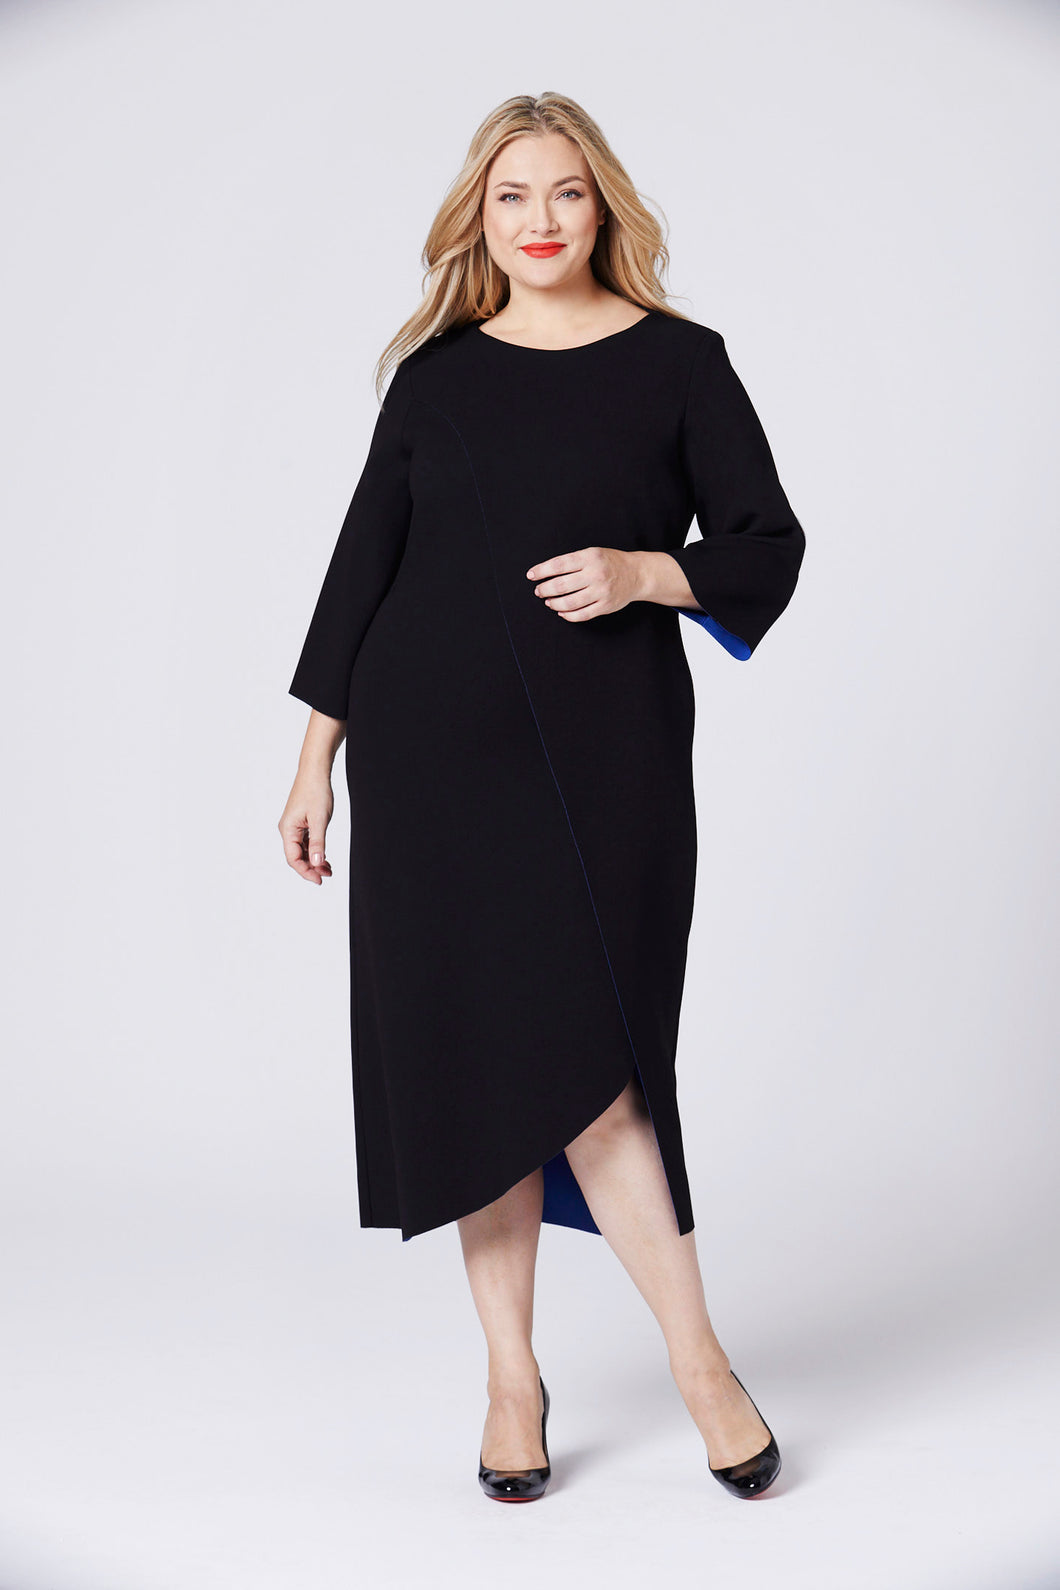 The Tete Dress Black